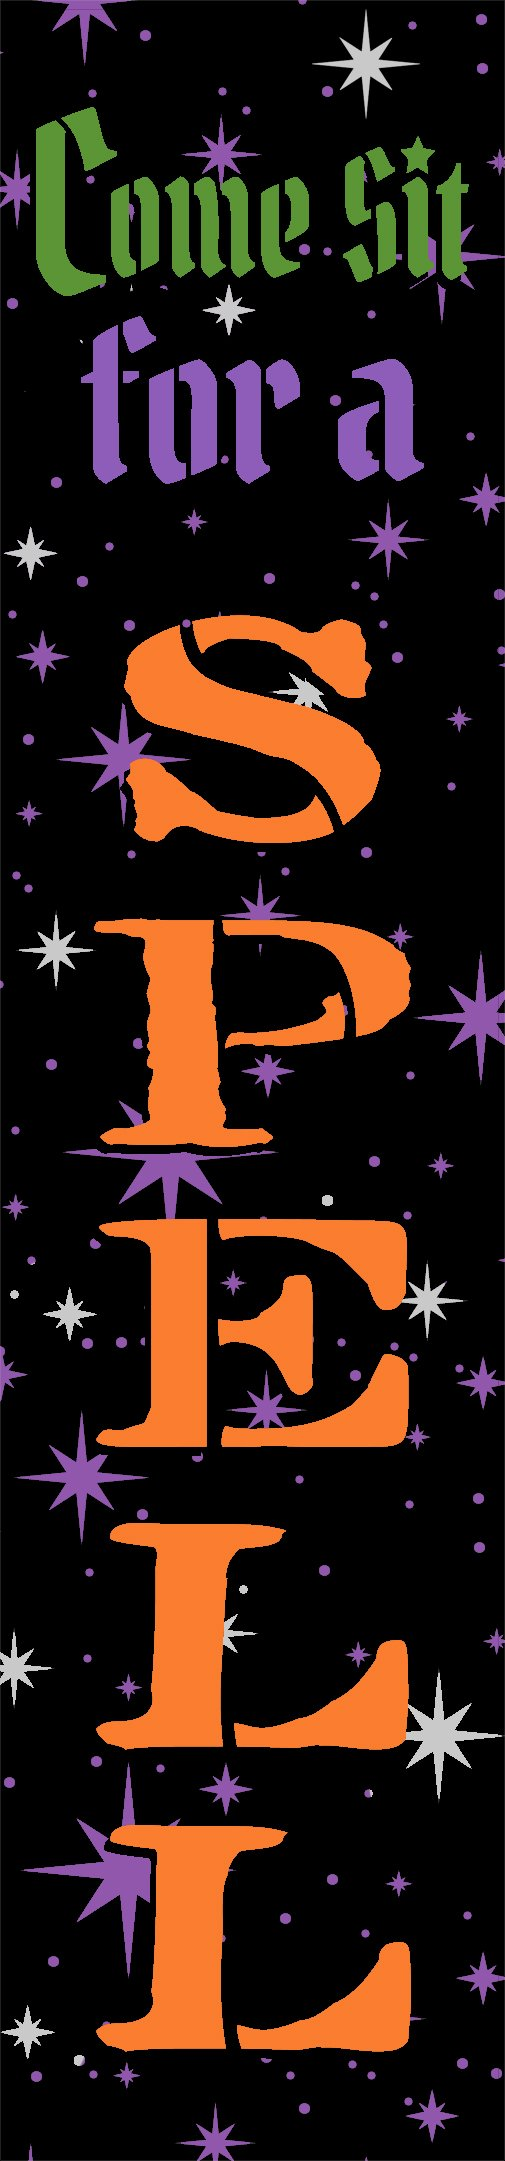 Come Sit for a Spell Stencil by StudioR12 | Craft DIY Halloween Home Decor | Paint Fall Porch Wood Sign | Reusable Mylar Template | Select Size